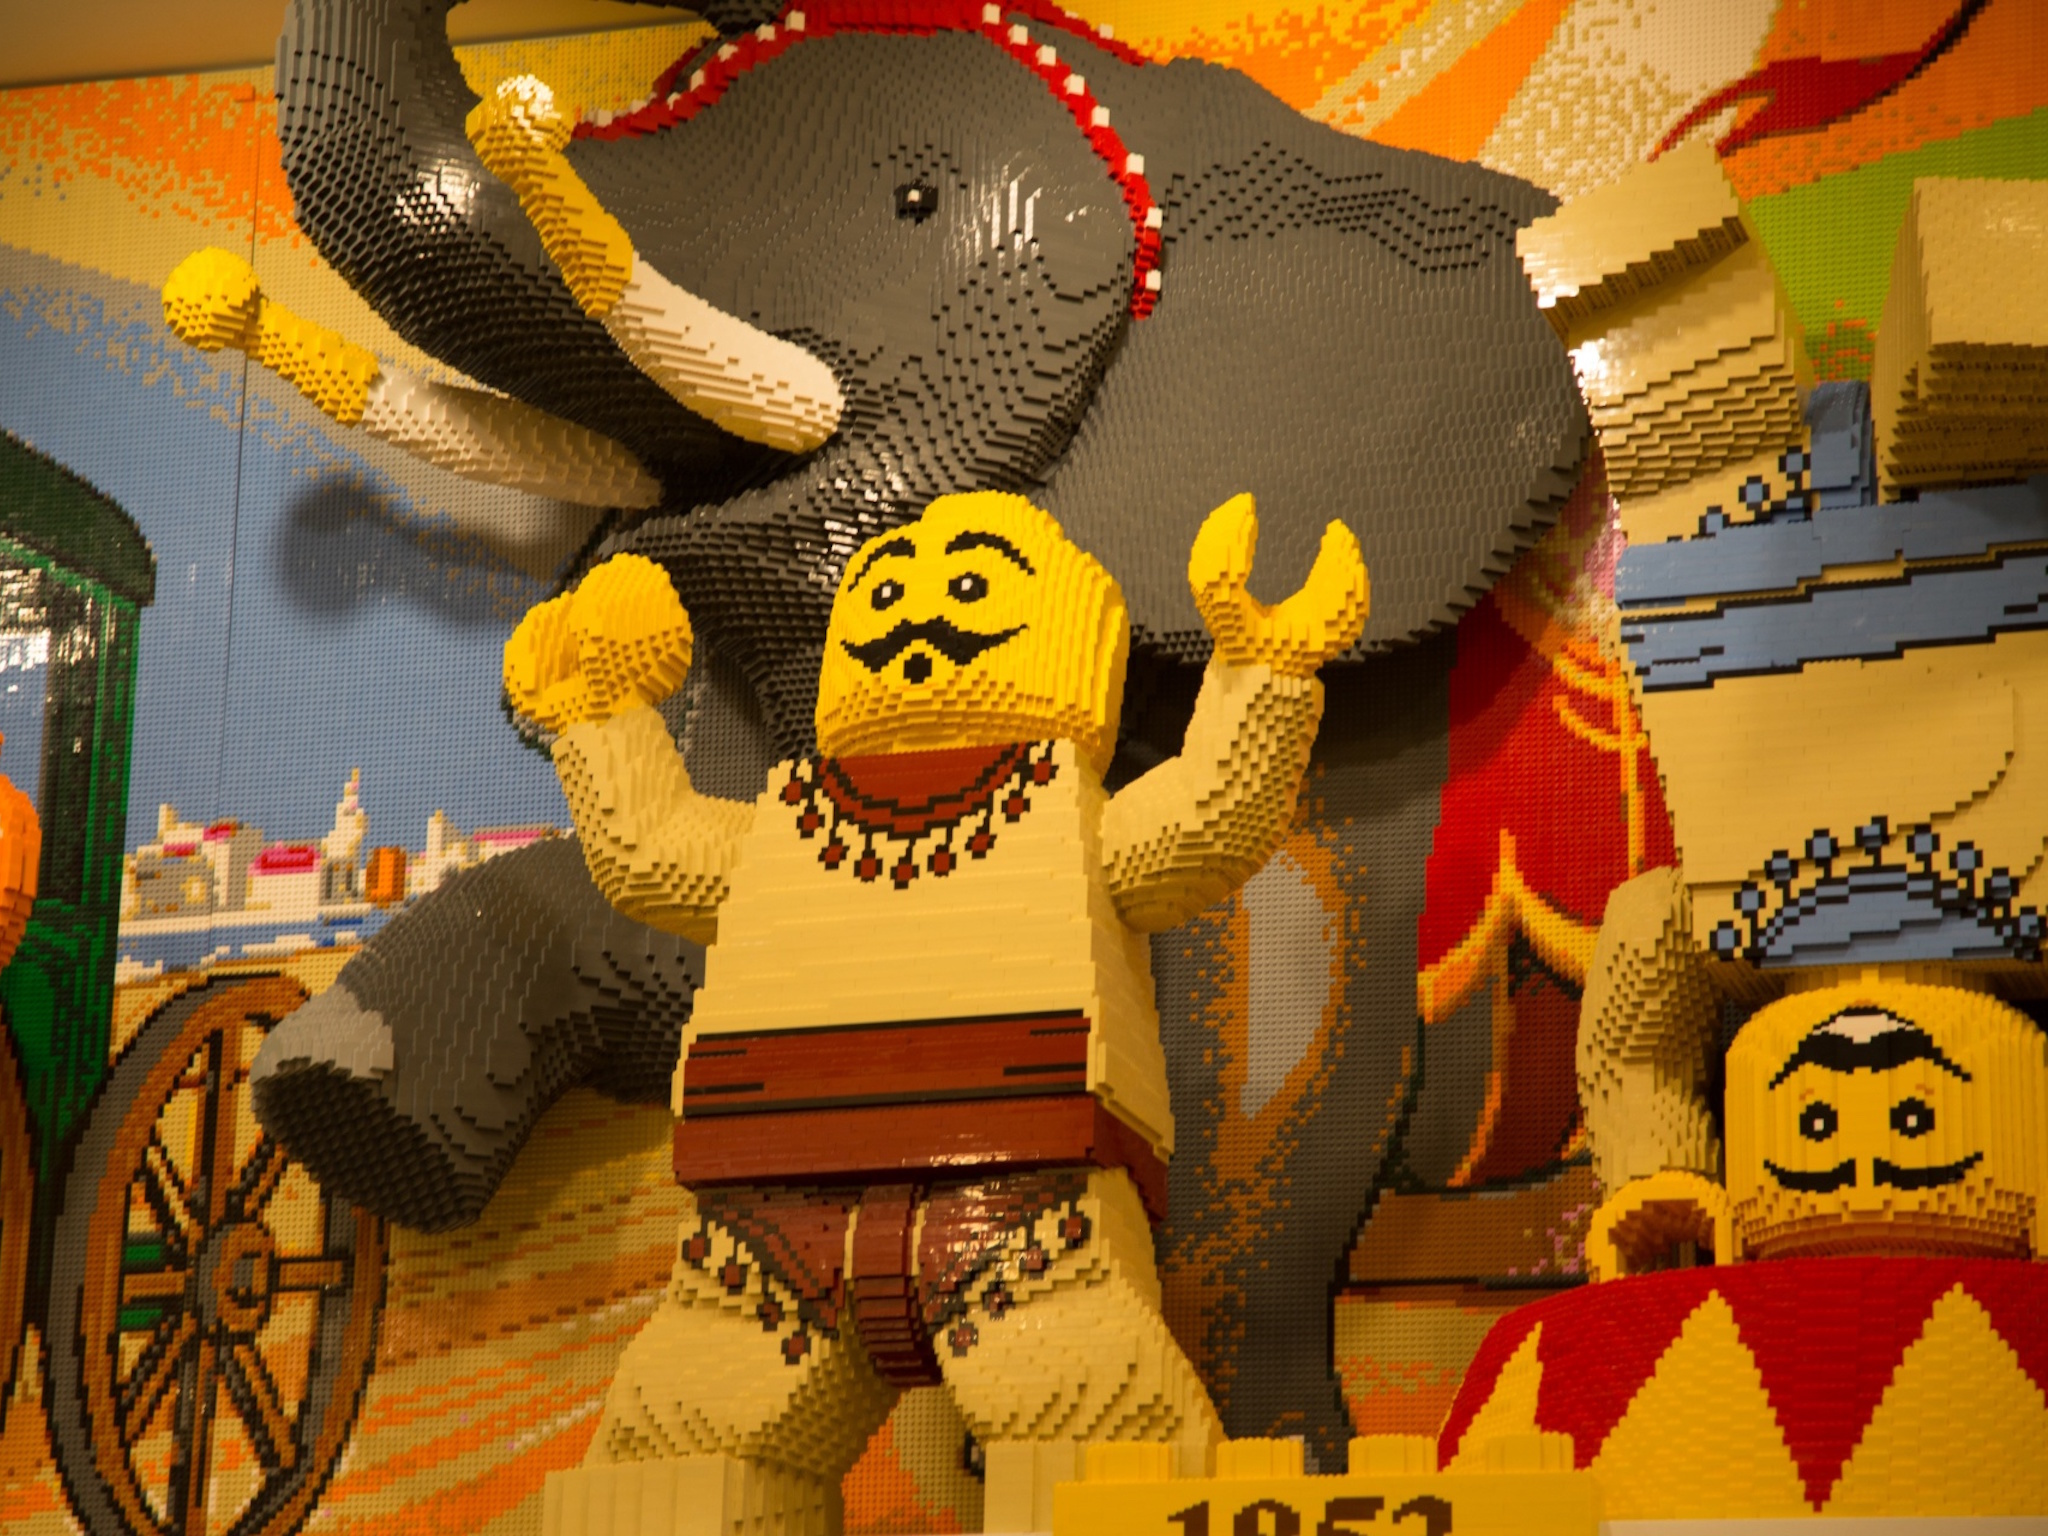 Sydney's first dedicated Lego store is opening this week